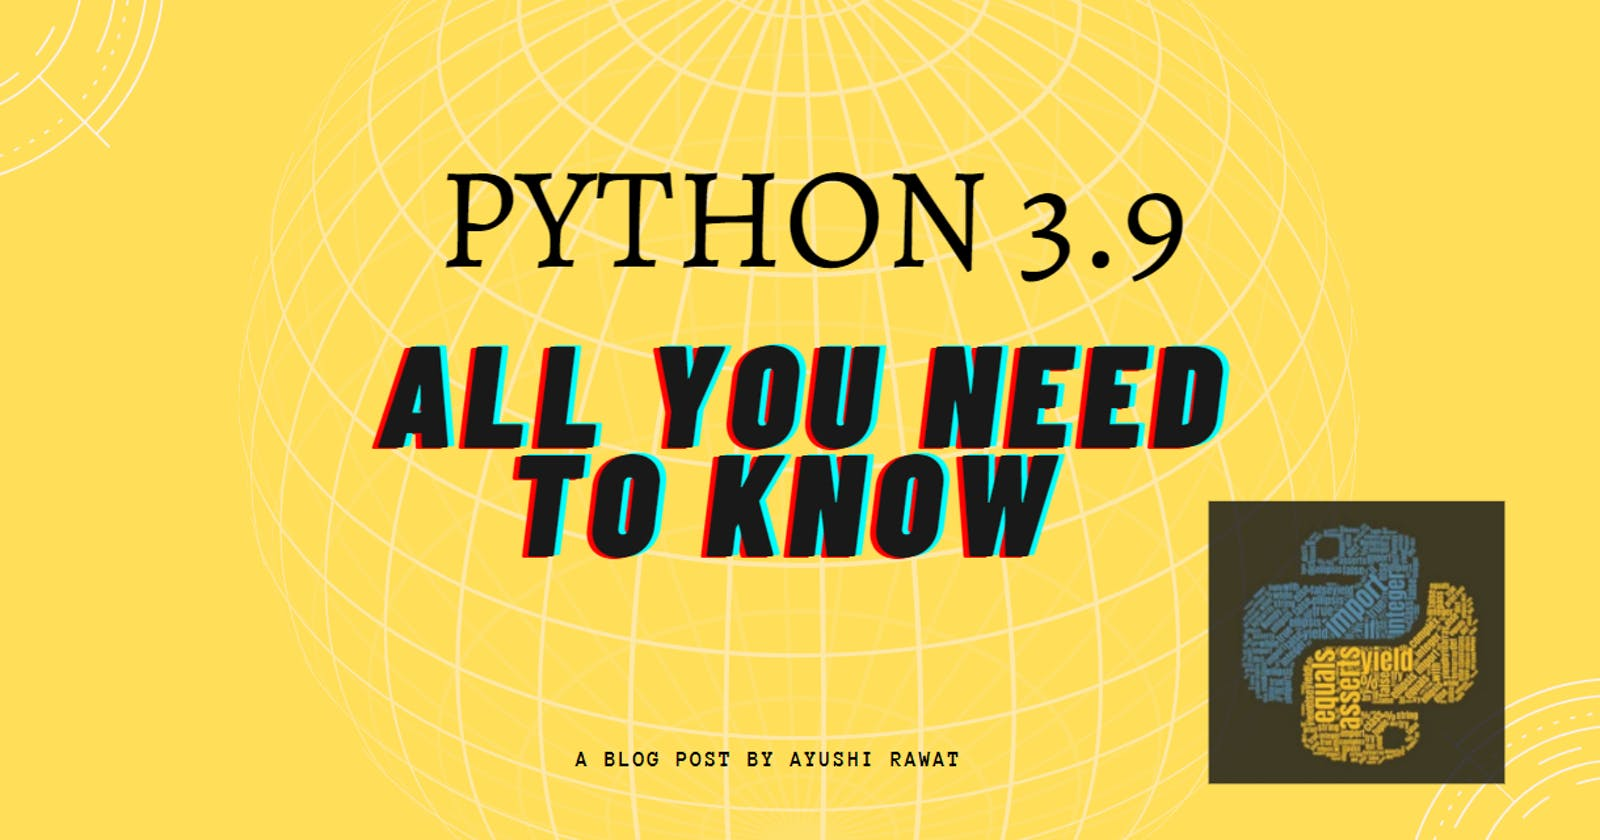 Python 3.9: All You need to know